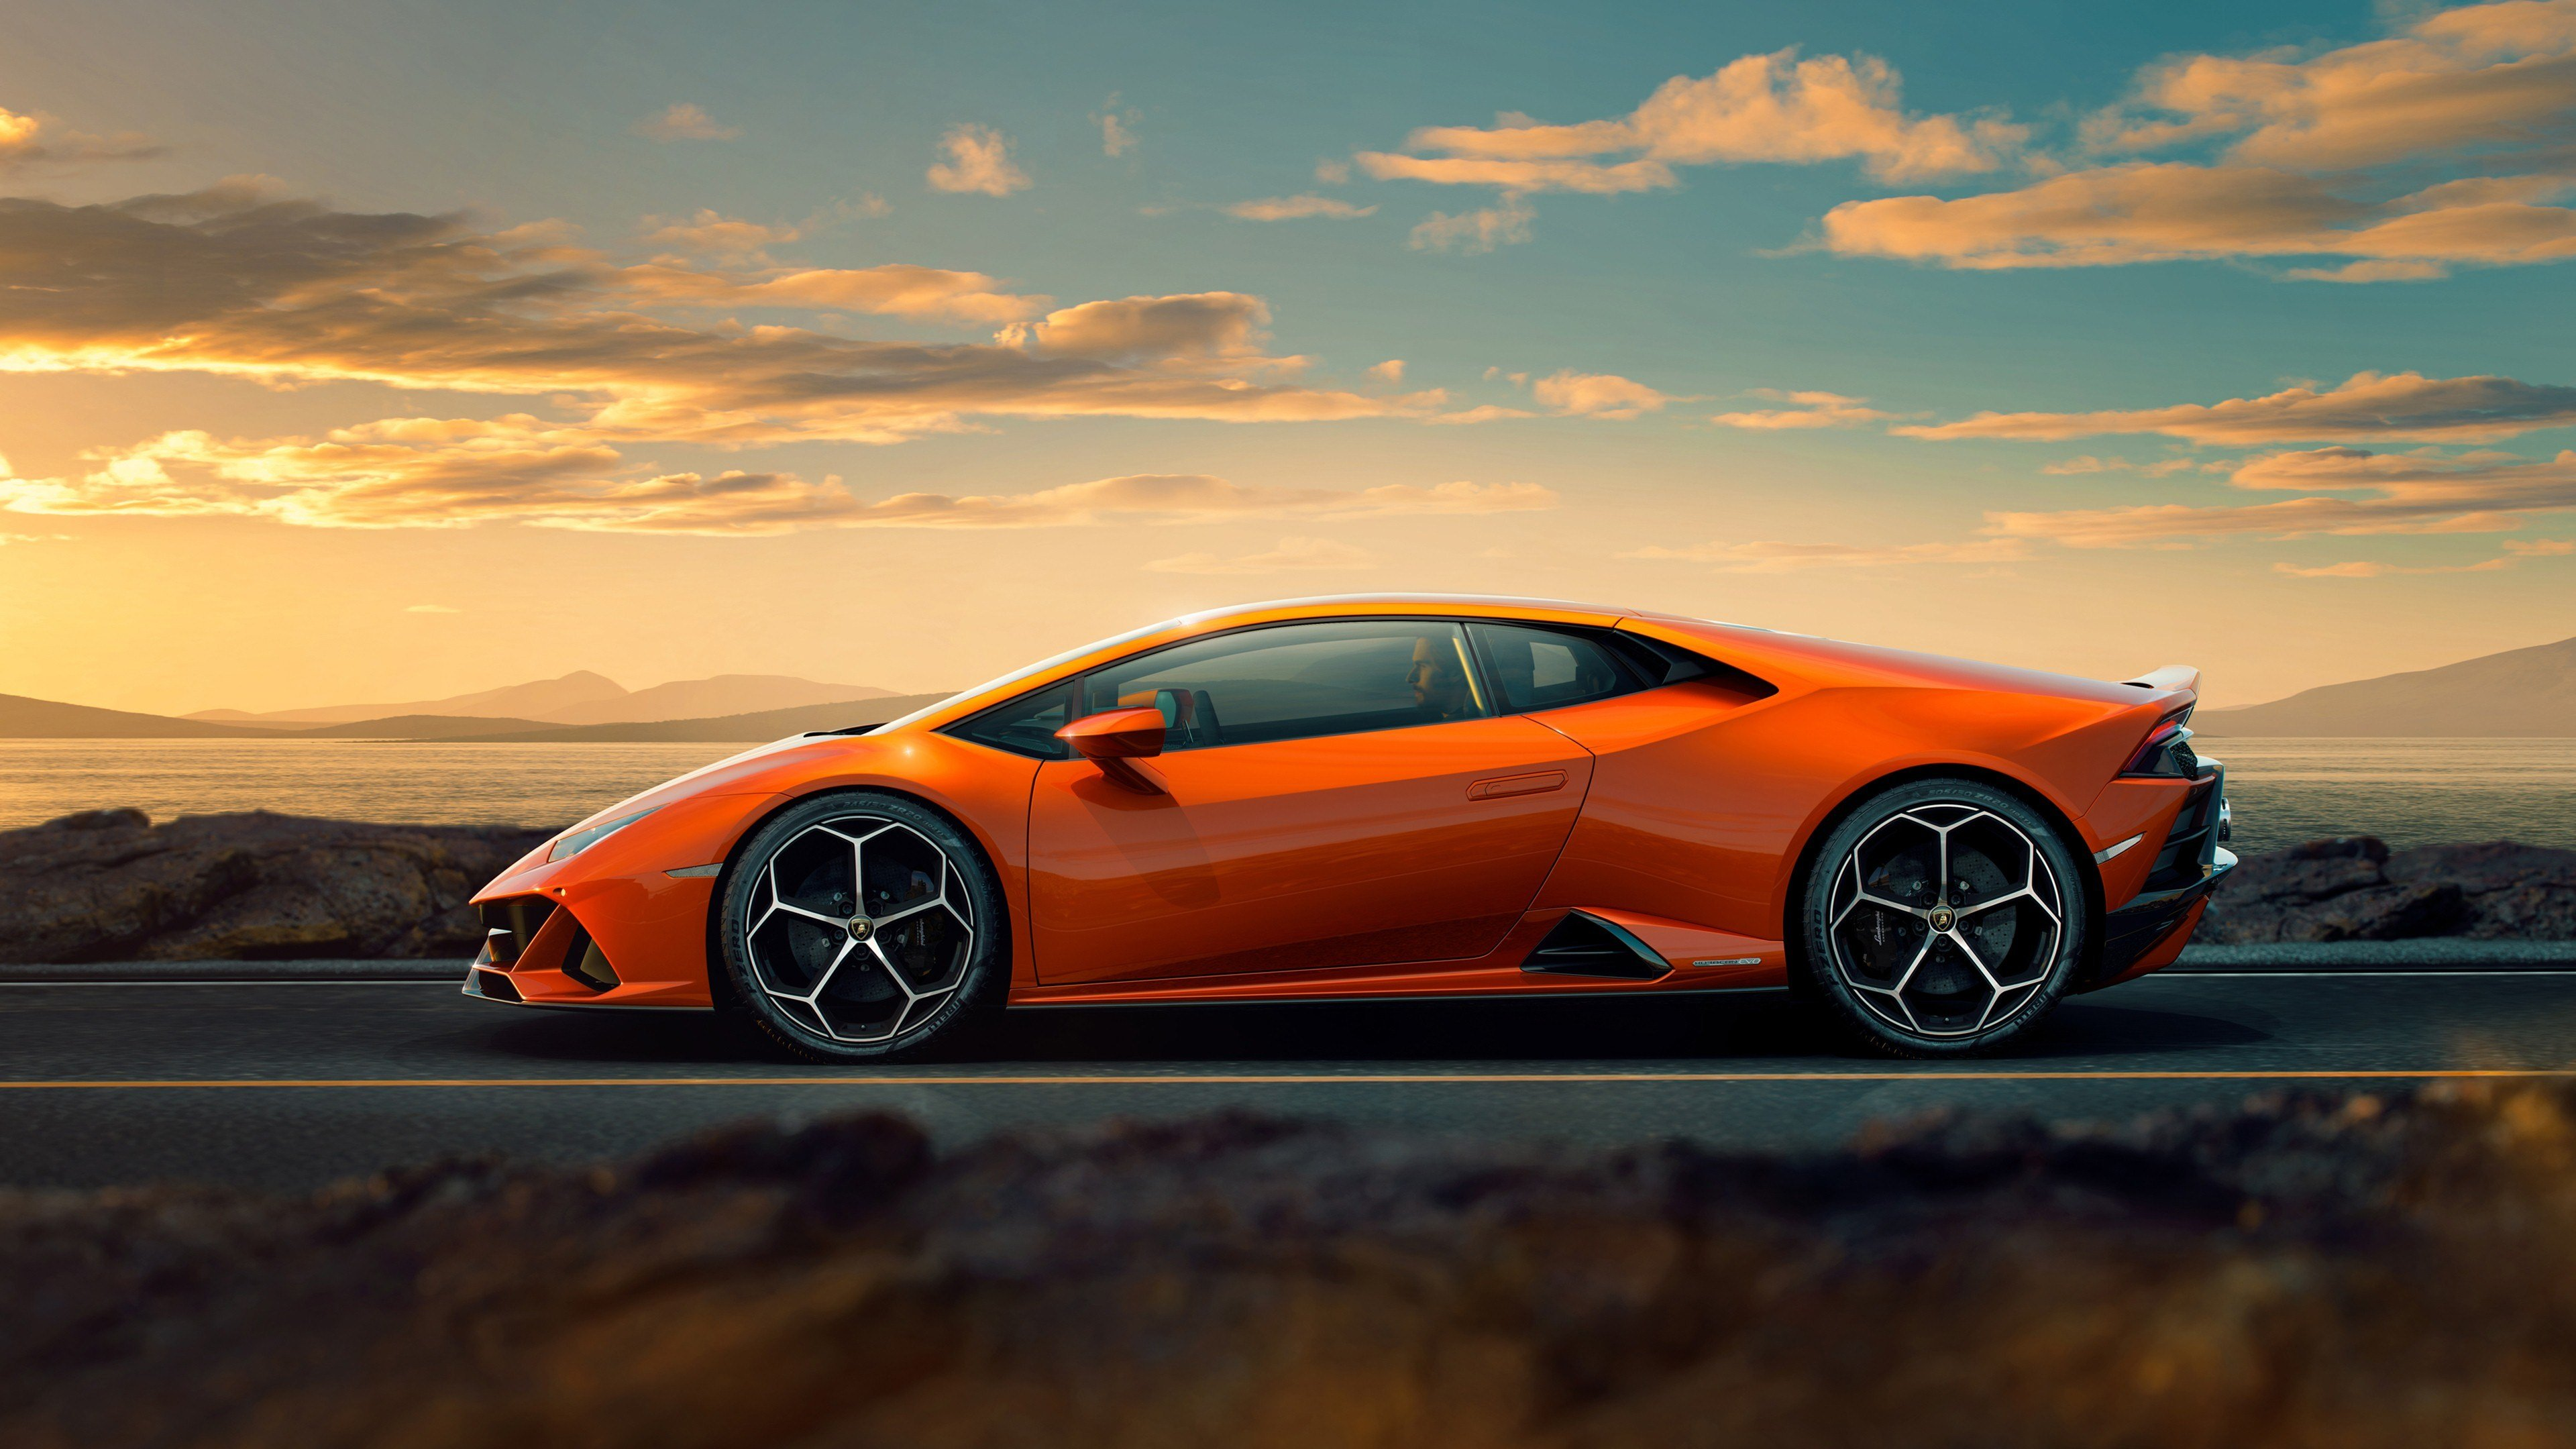 New 4K Photo Of 2019 Lamborghini Huracan Evo Car Hd Wallpapers On This Month